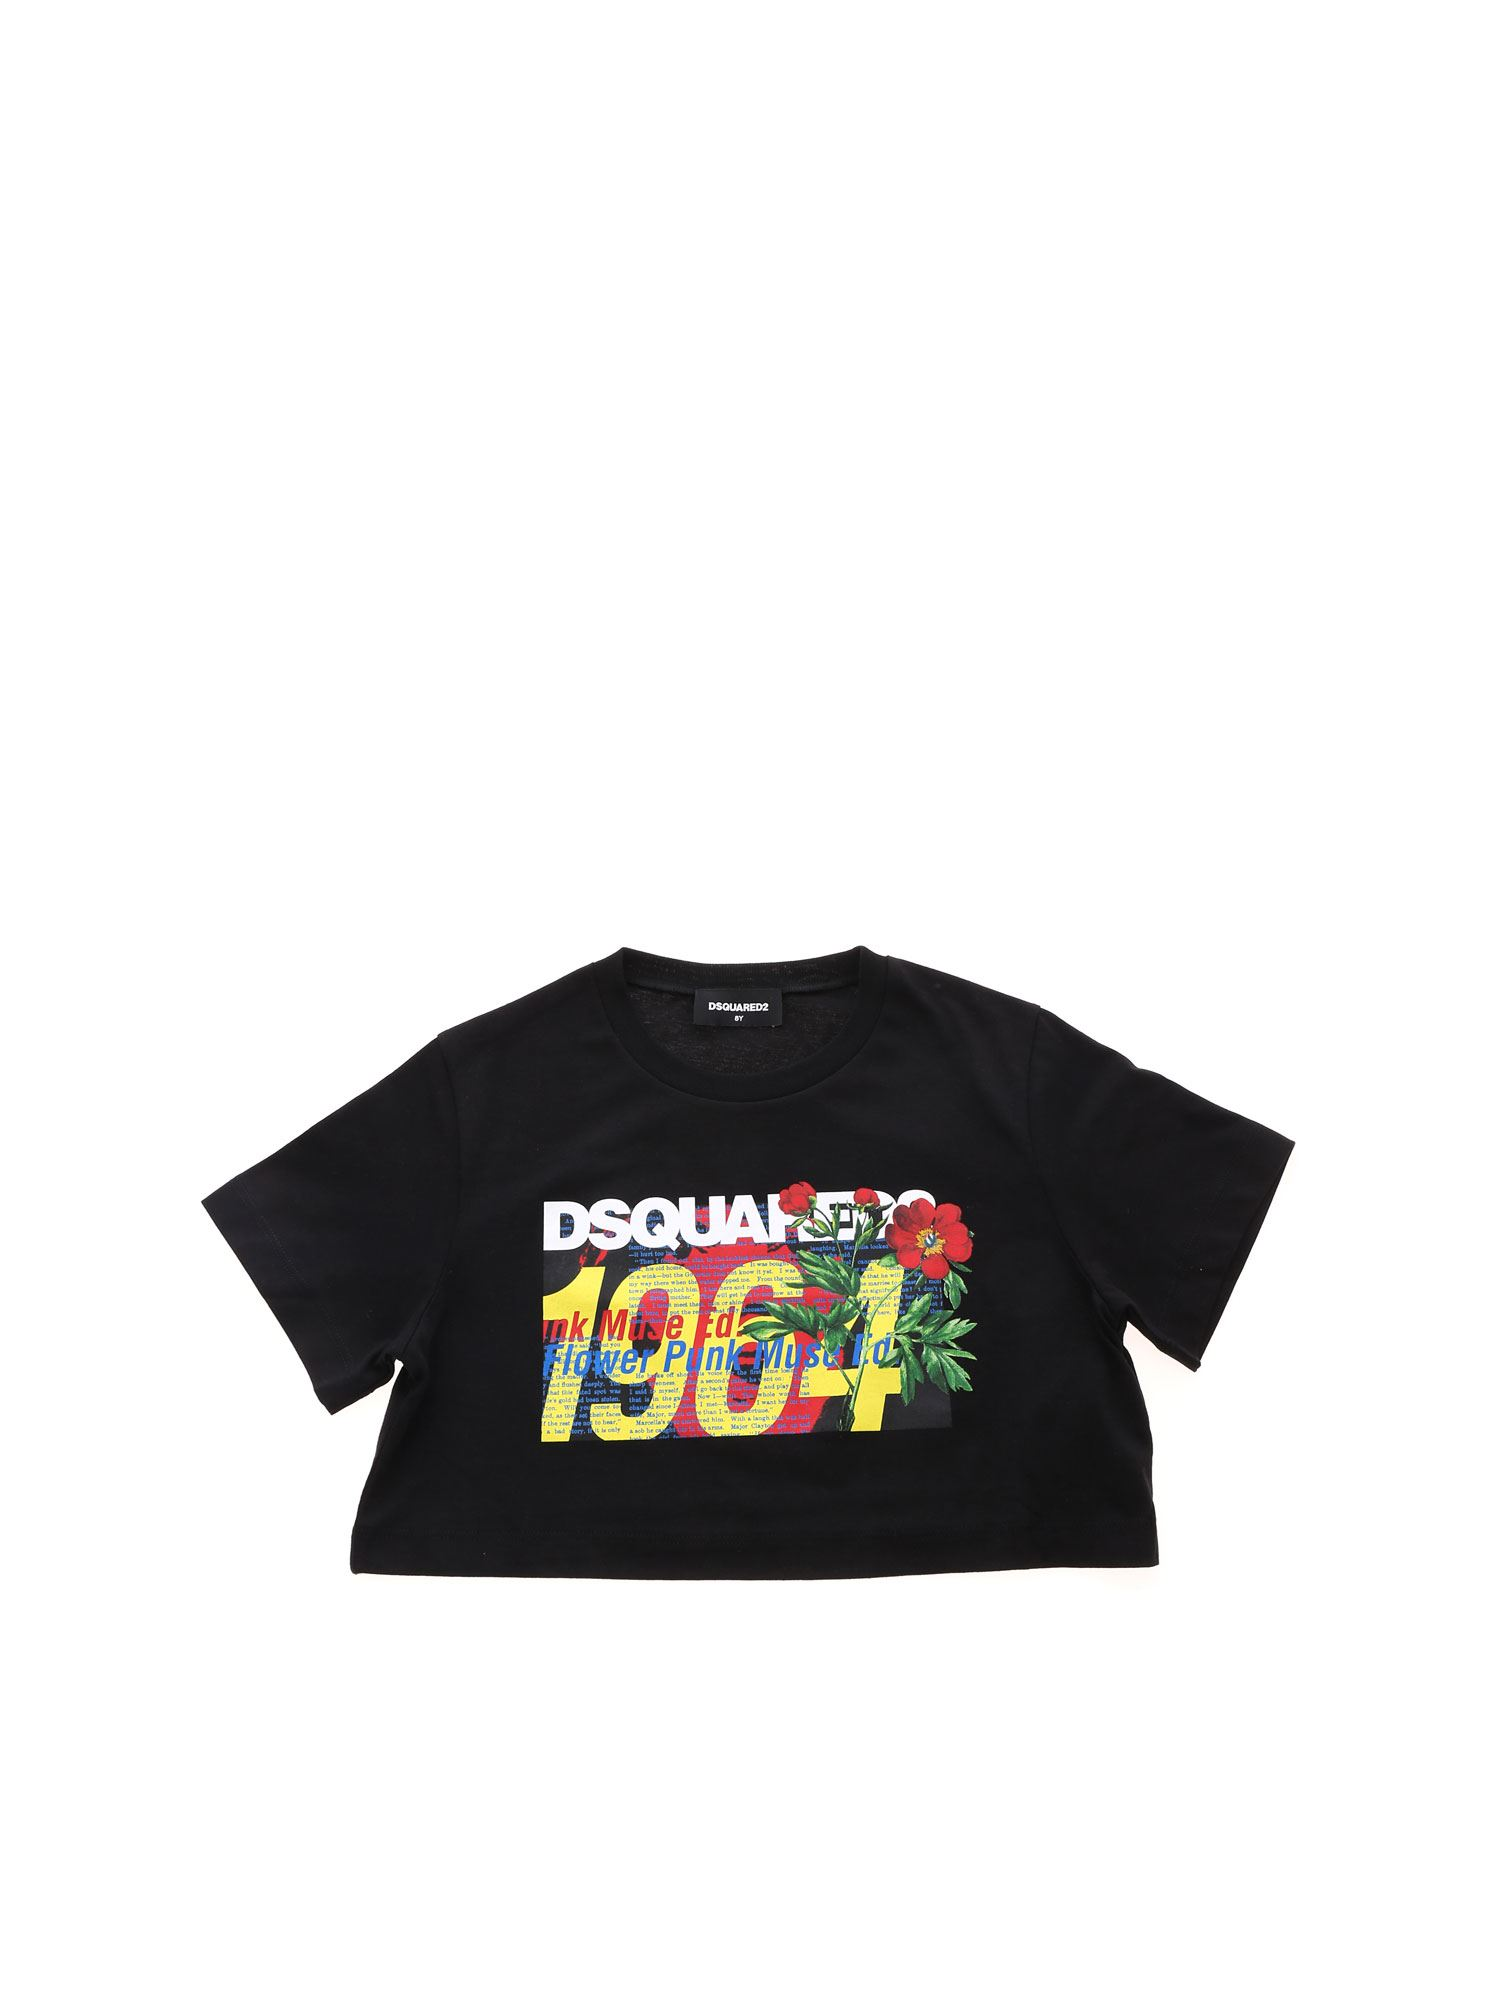 Dsquared2 DSQUARED 1964 CROP T-SHIRT IN BLACK